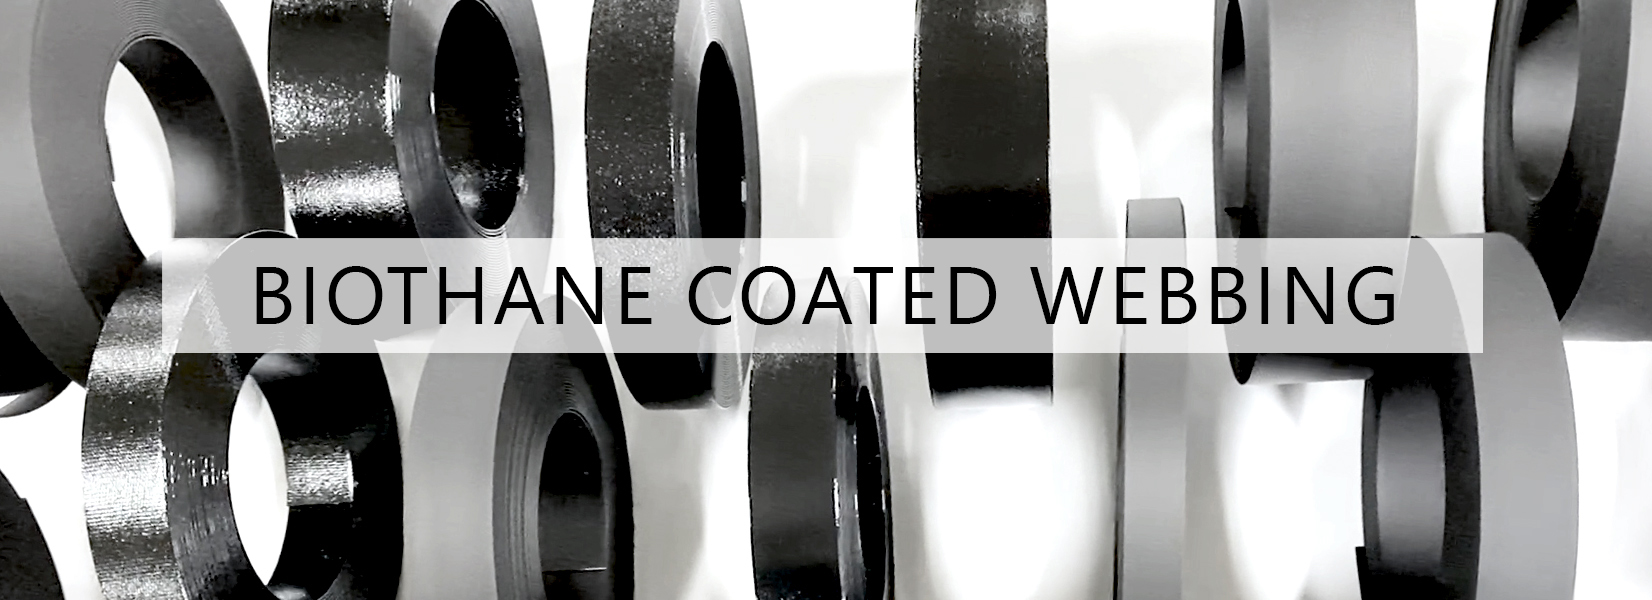 biothane coated webbing